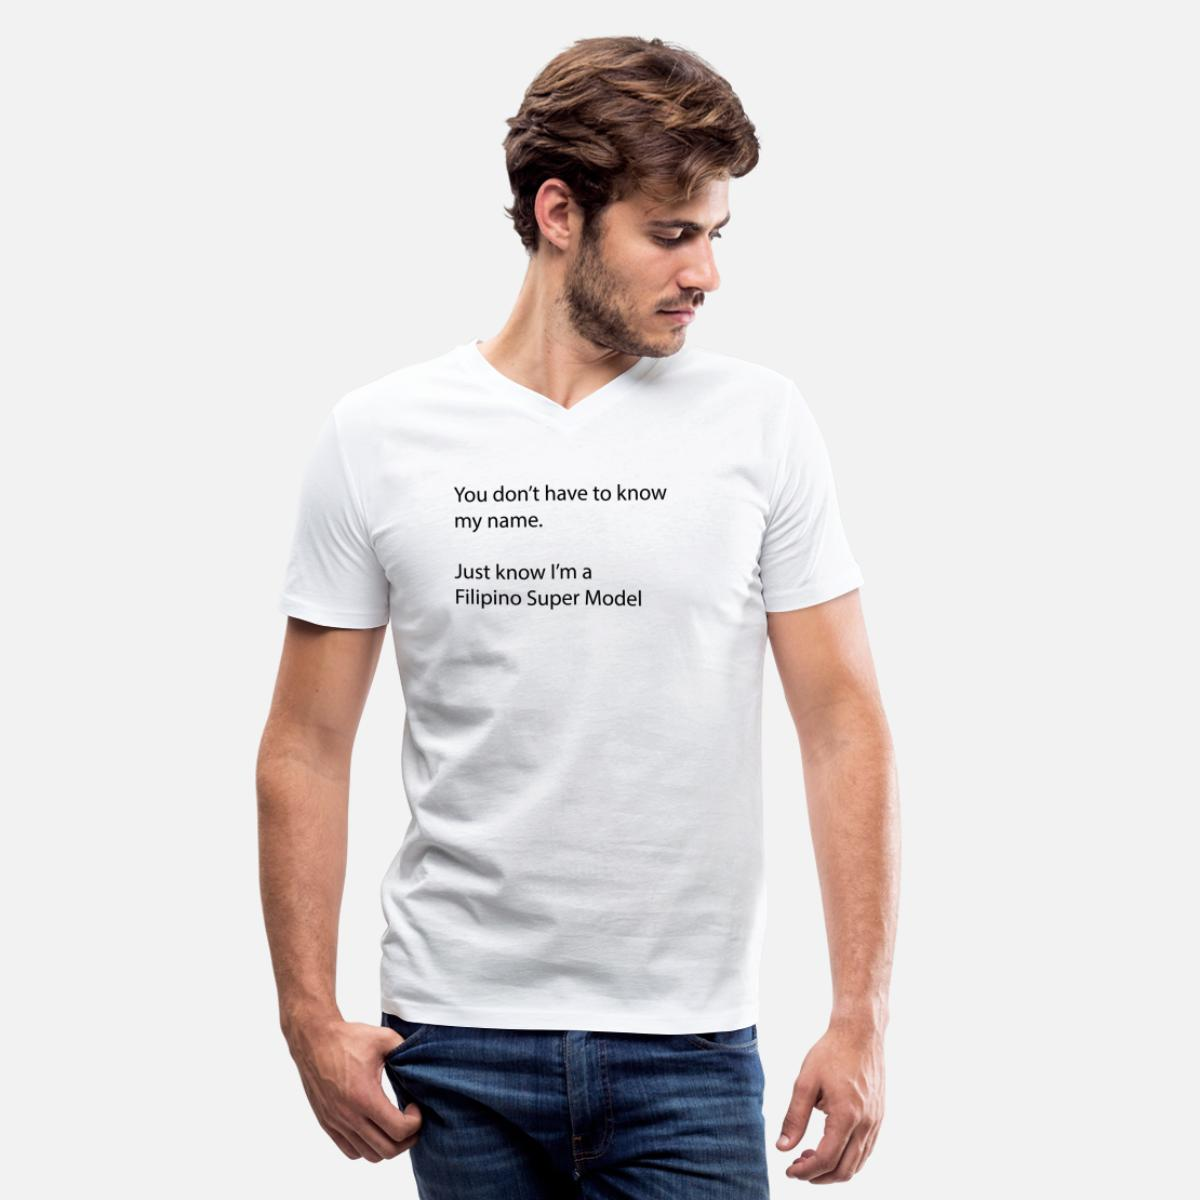 Just know Im a Filipino Super Model Men's V-Neck T-Shirt by Canvas - white